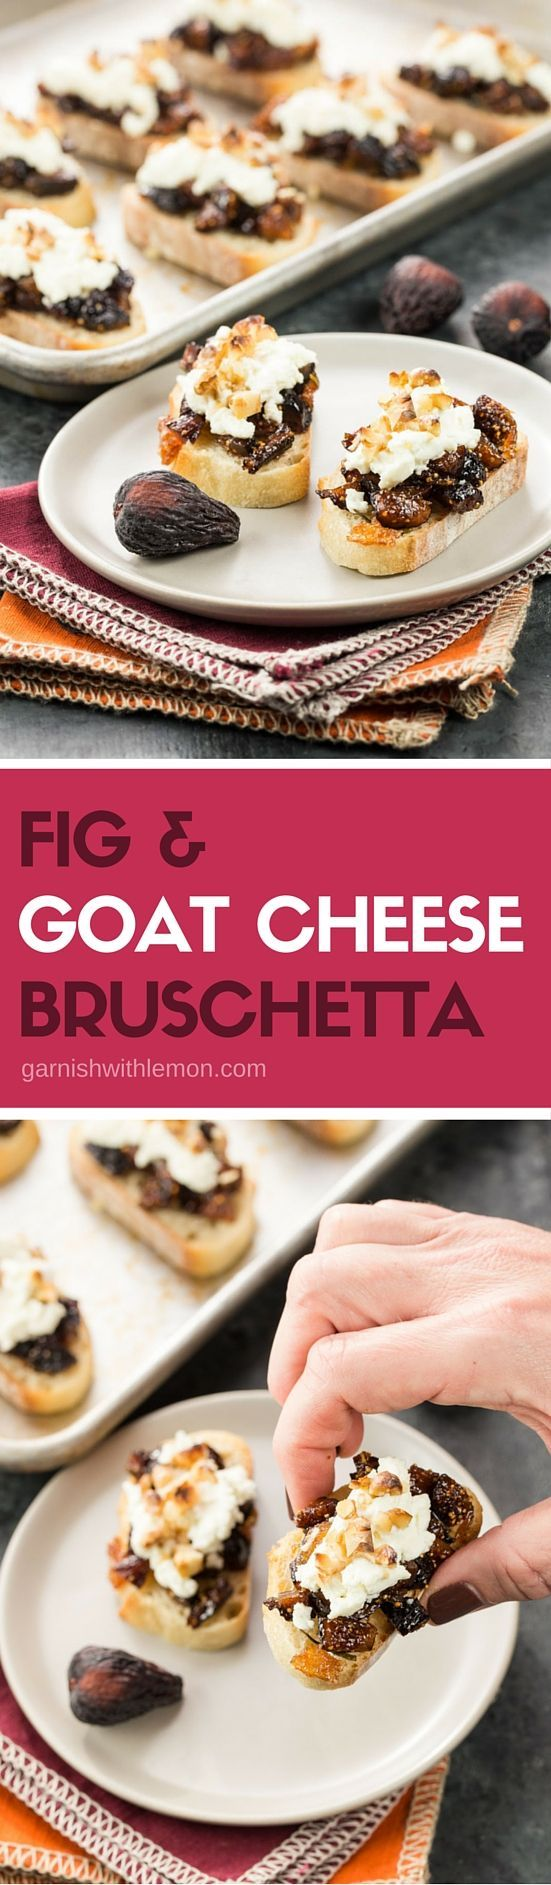 Fake it or Make it : Fig & Goat Cheese Bruschetta  #HolidayPartyRecipes